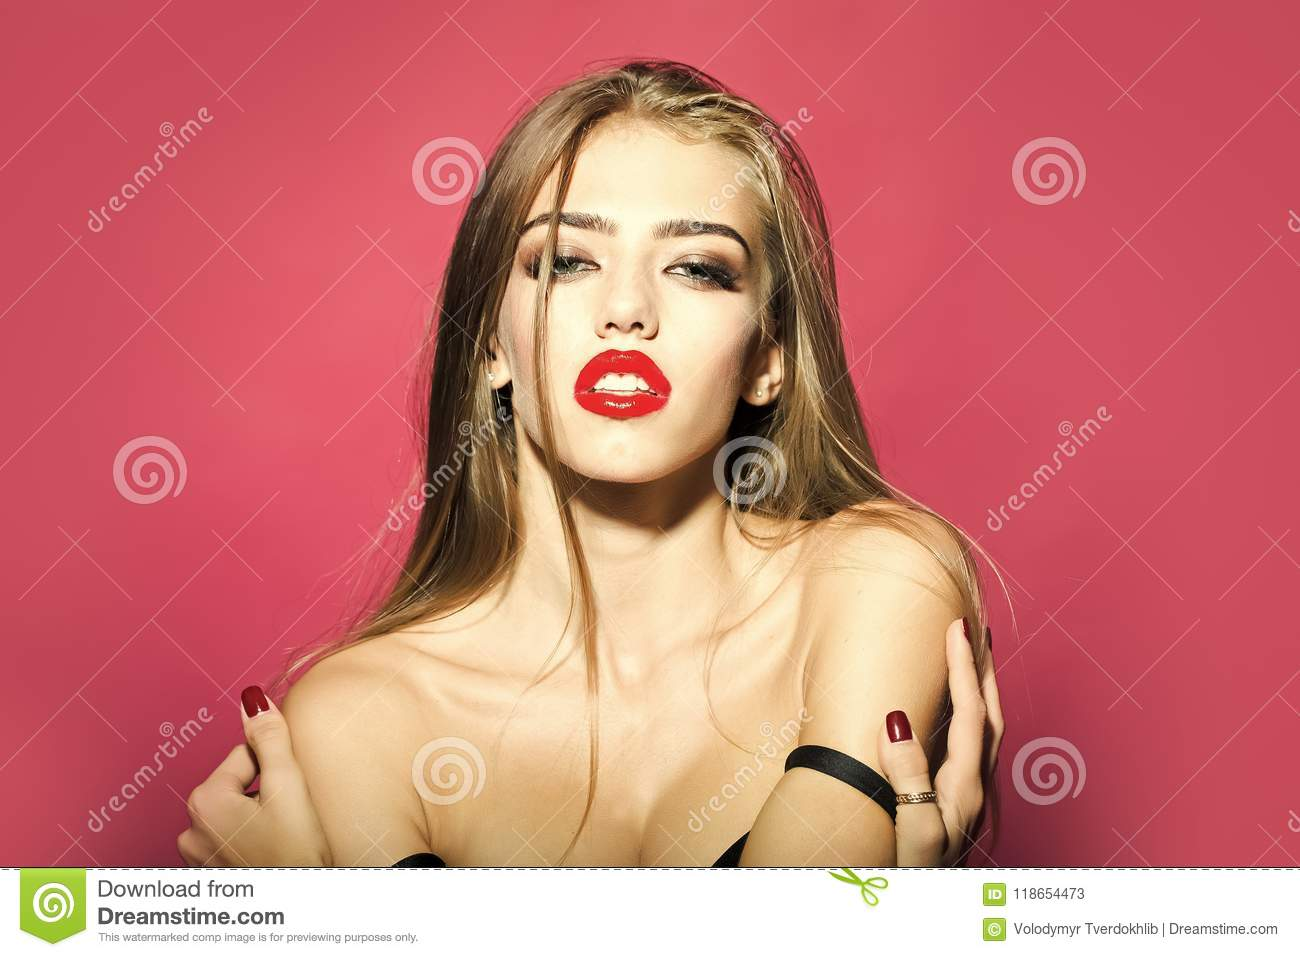 More than sexy headshots of young girls